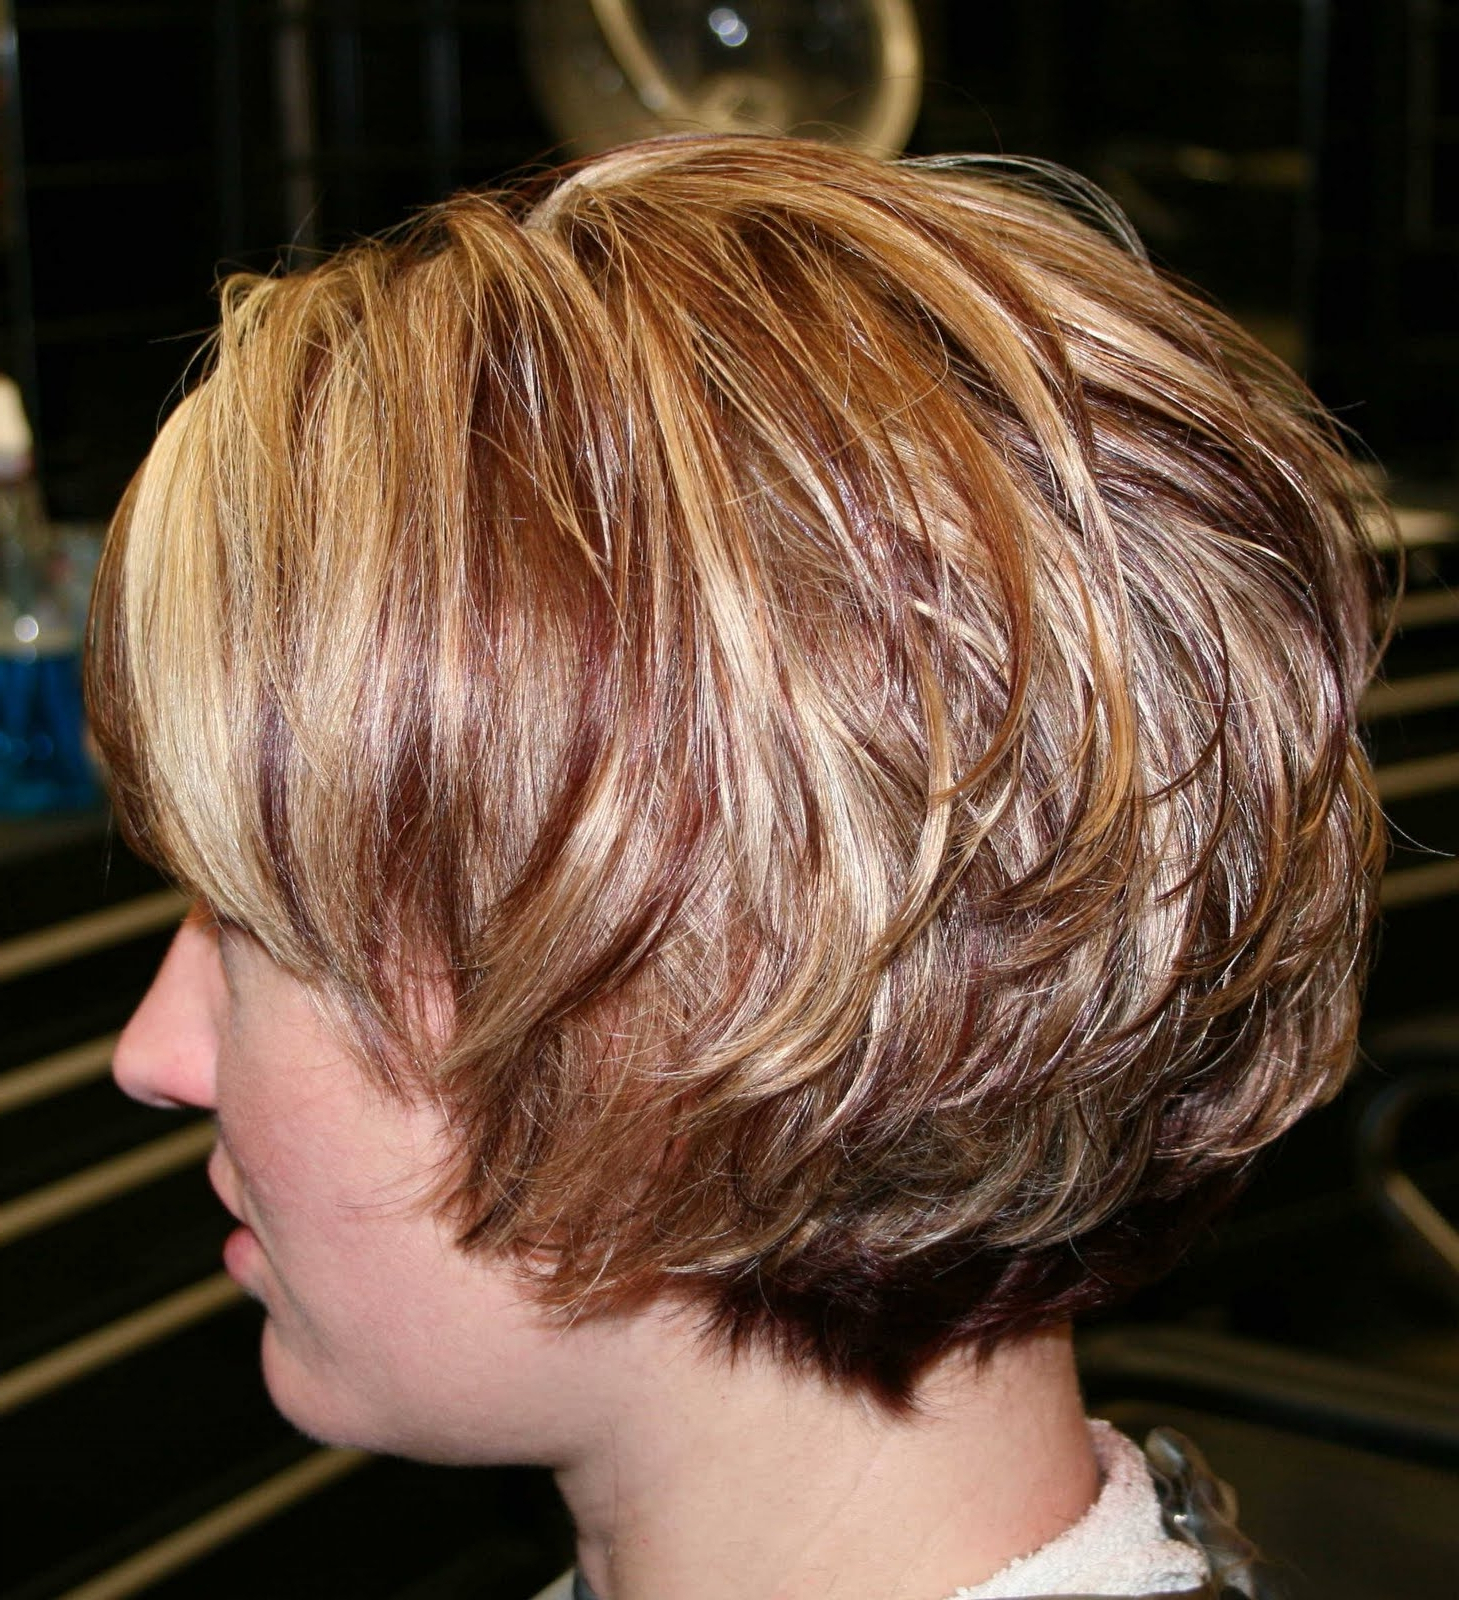 Layered Bob For Wavy Hair Cute Messy Short Wavy Curly Hairstyle For Intended For Short Wavy Haircuts With Messy Layers (View 16 of 20)